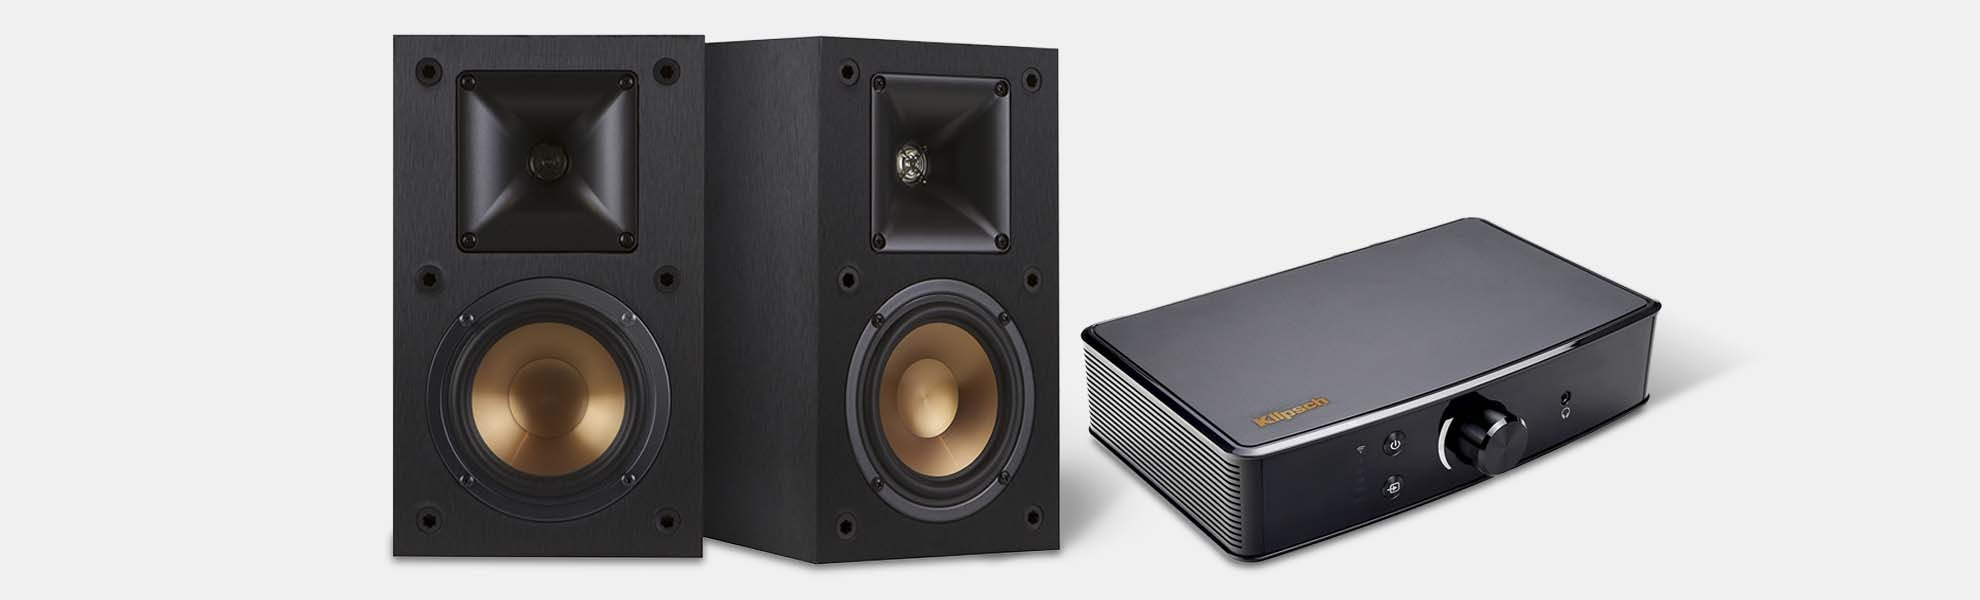 Klipsch R-15M Speakers & Amplifier